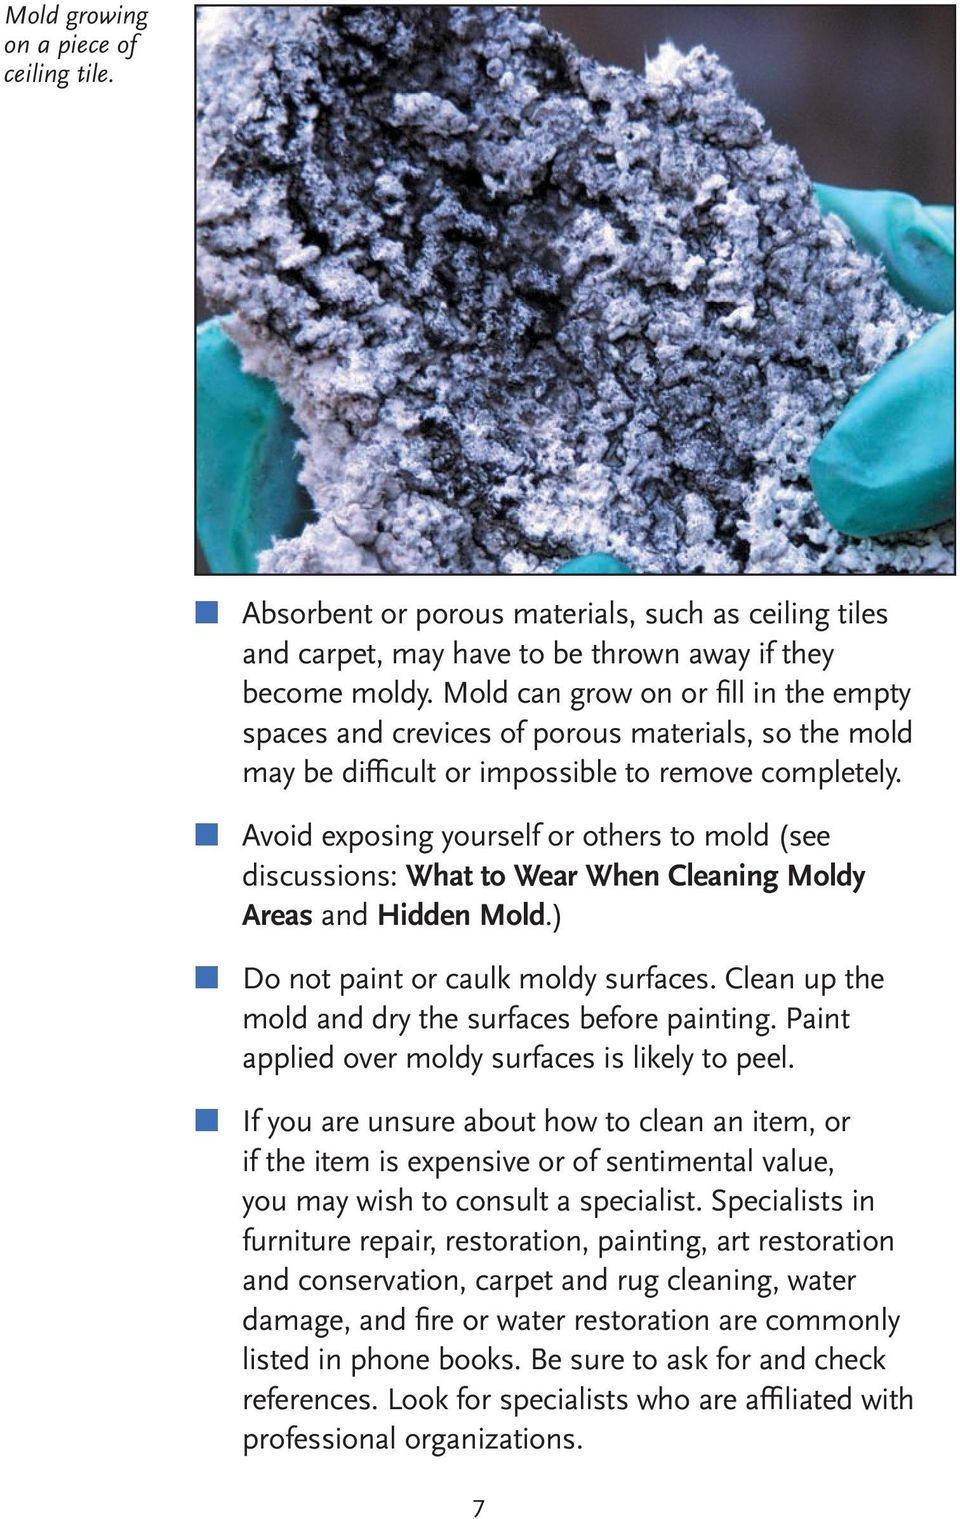 Avoid exposing yourself or others to mold (see discussions: What to Wear When Cleaning Moldy Areas and Hidden Mold.) Do not paint or caulk moldy surfaces.